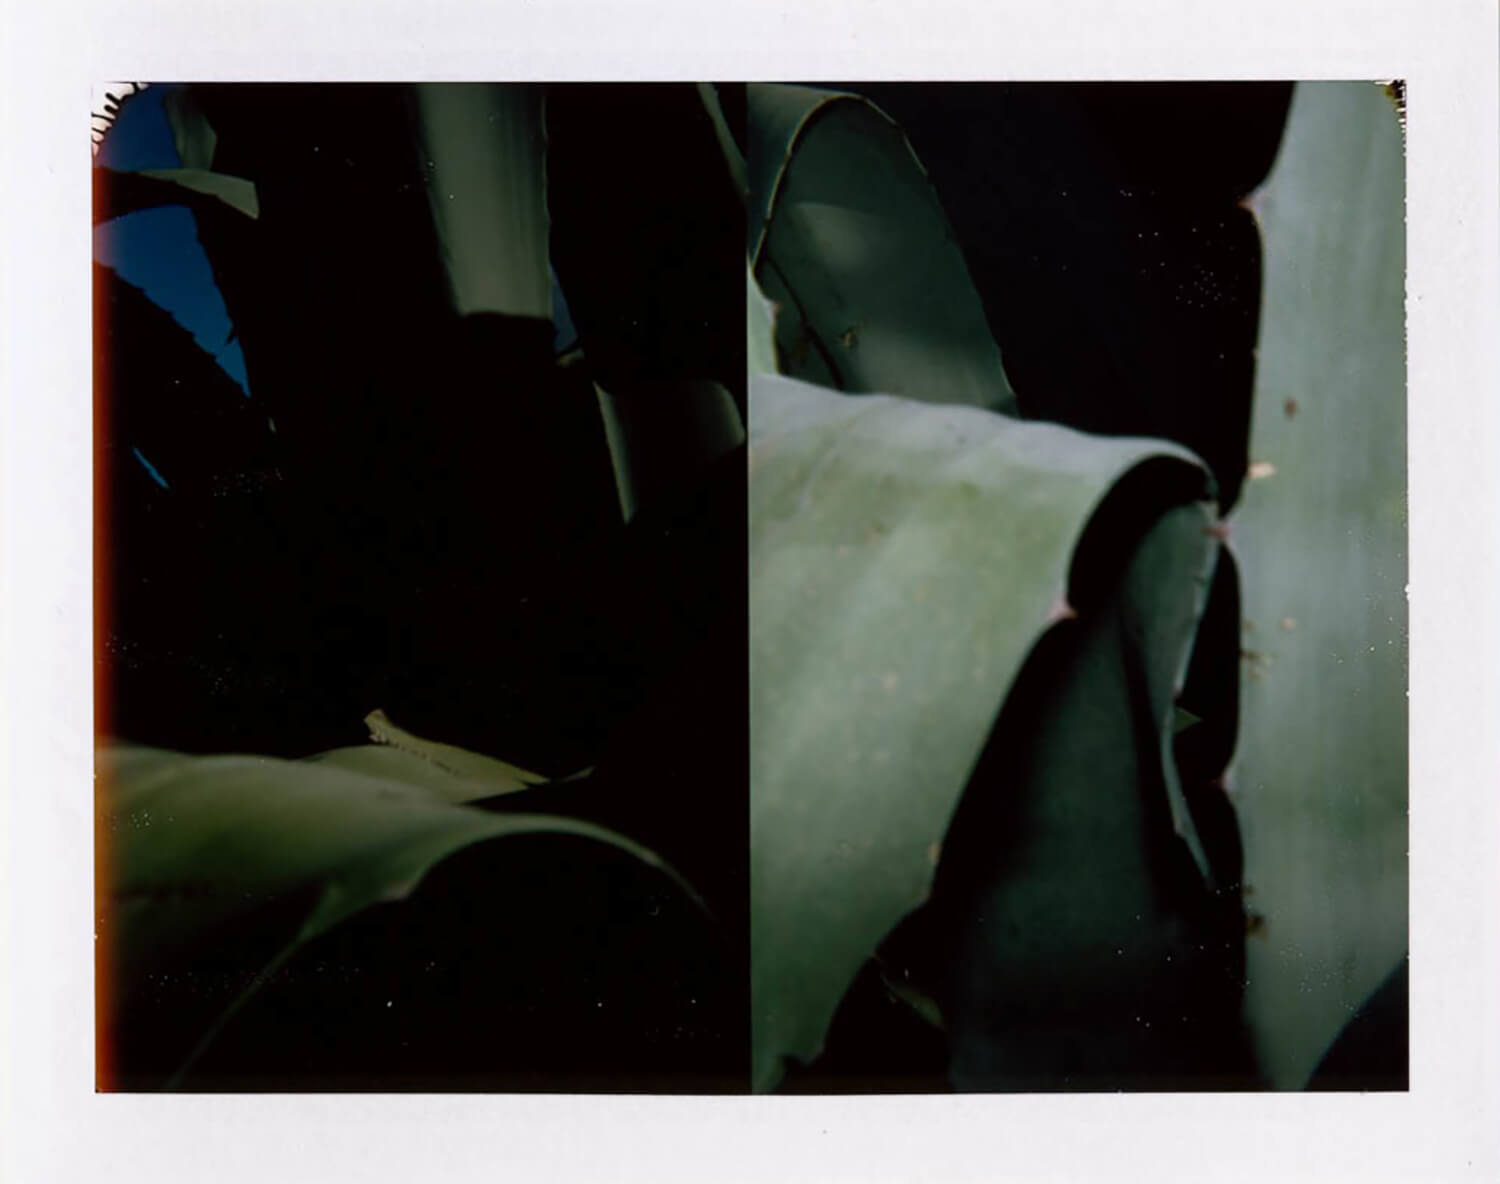 I.D.016, The Polaroid Revolutionary Workers, 2013, Polaroid Picture, 107mm x 86mm